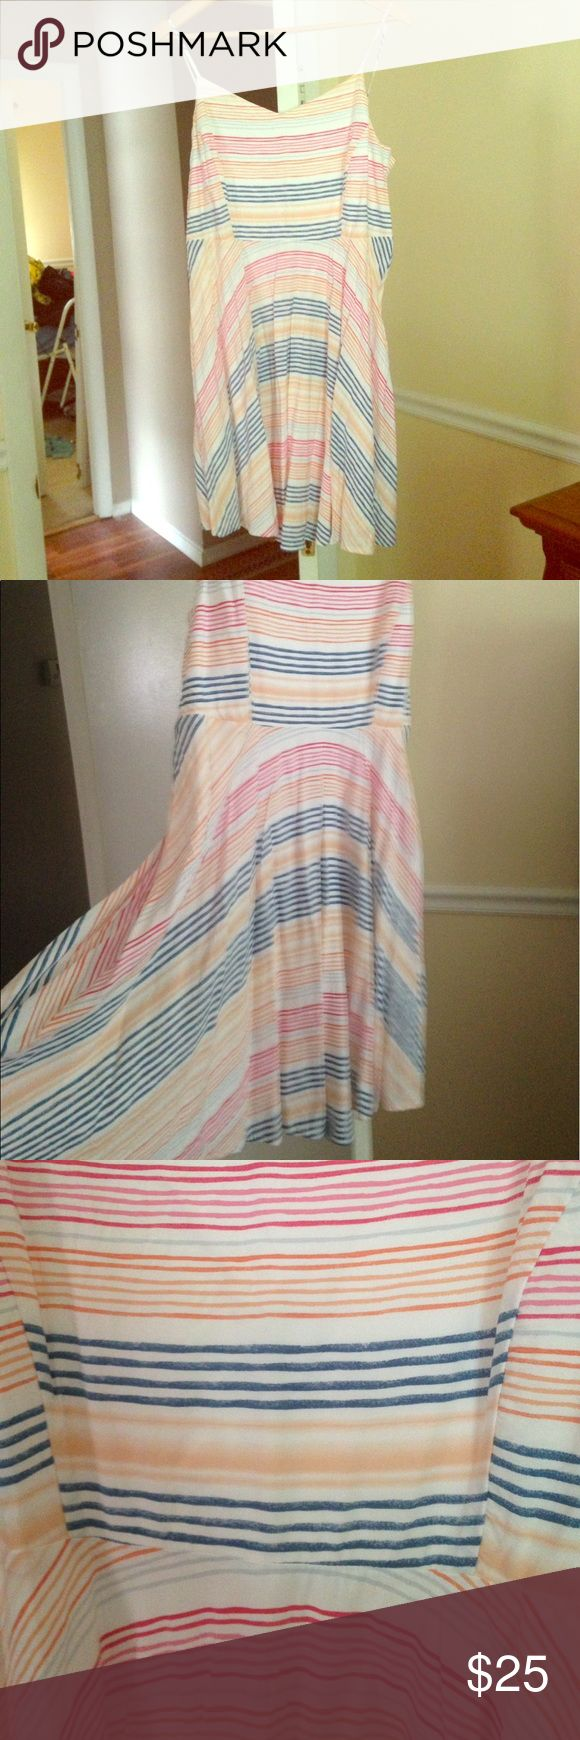 NWOT Old Navy Striped Cami A Line Dress NWOT Old Navy Striped Cami A Line Dress. Washed but not worn. True to size! Old Navy Dresses